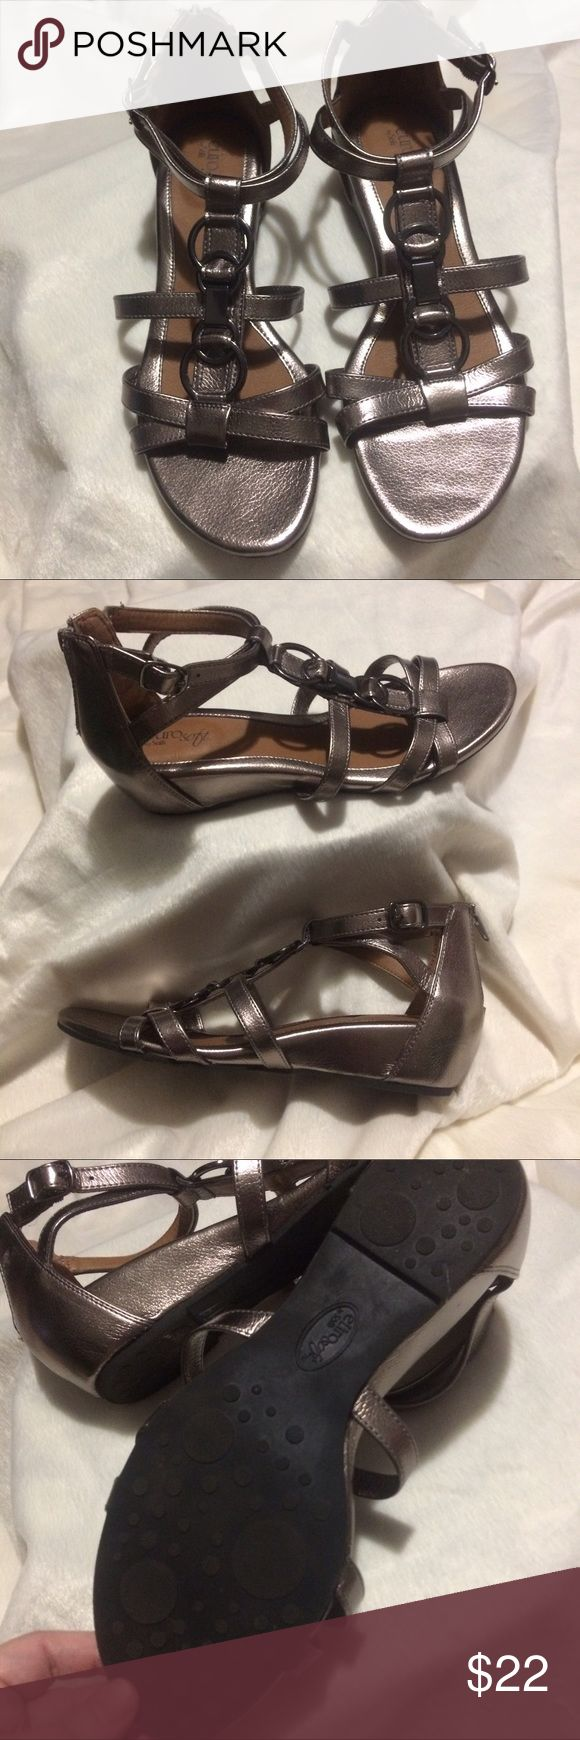 """Euro Soft By Sofft """"Riana"""" Sandals Really nice metallic sandals with zipper closure. Sofft Shoes Sandals"""